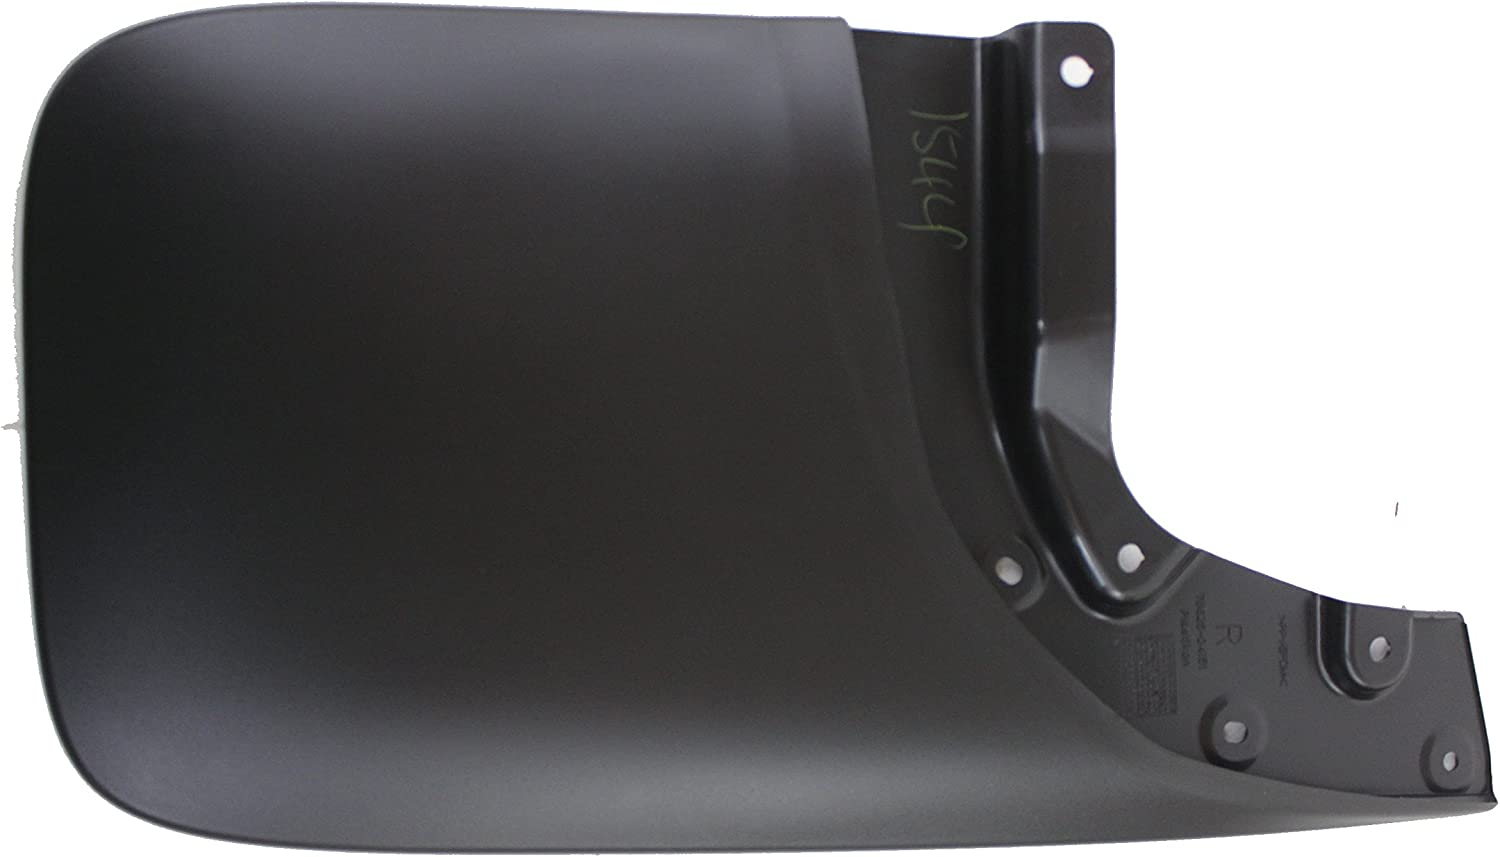 TOYOTA Genuine 76625-19455-D4 Quarter Panel Mudguard Sub Assembly